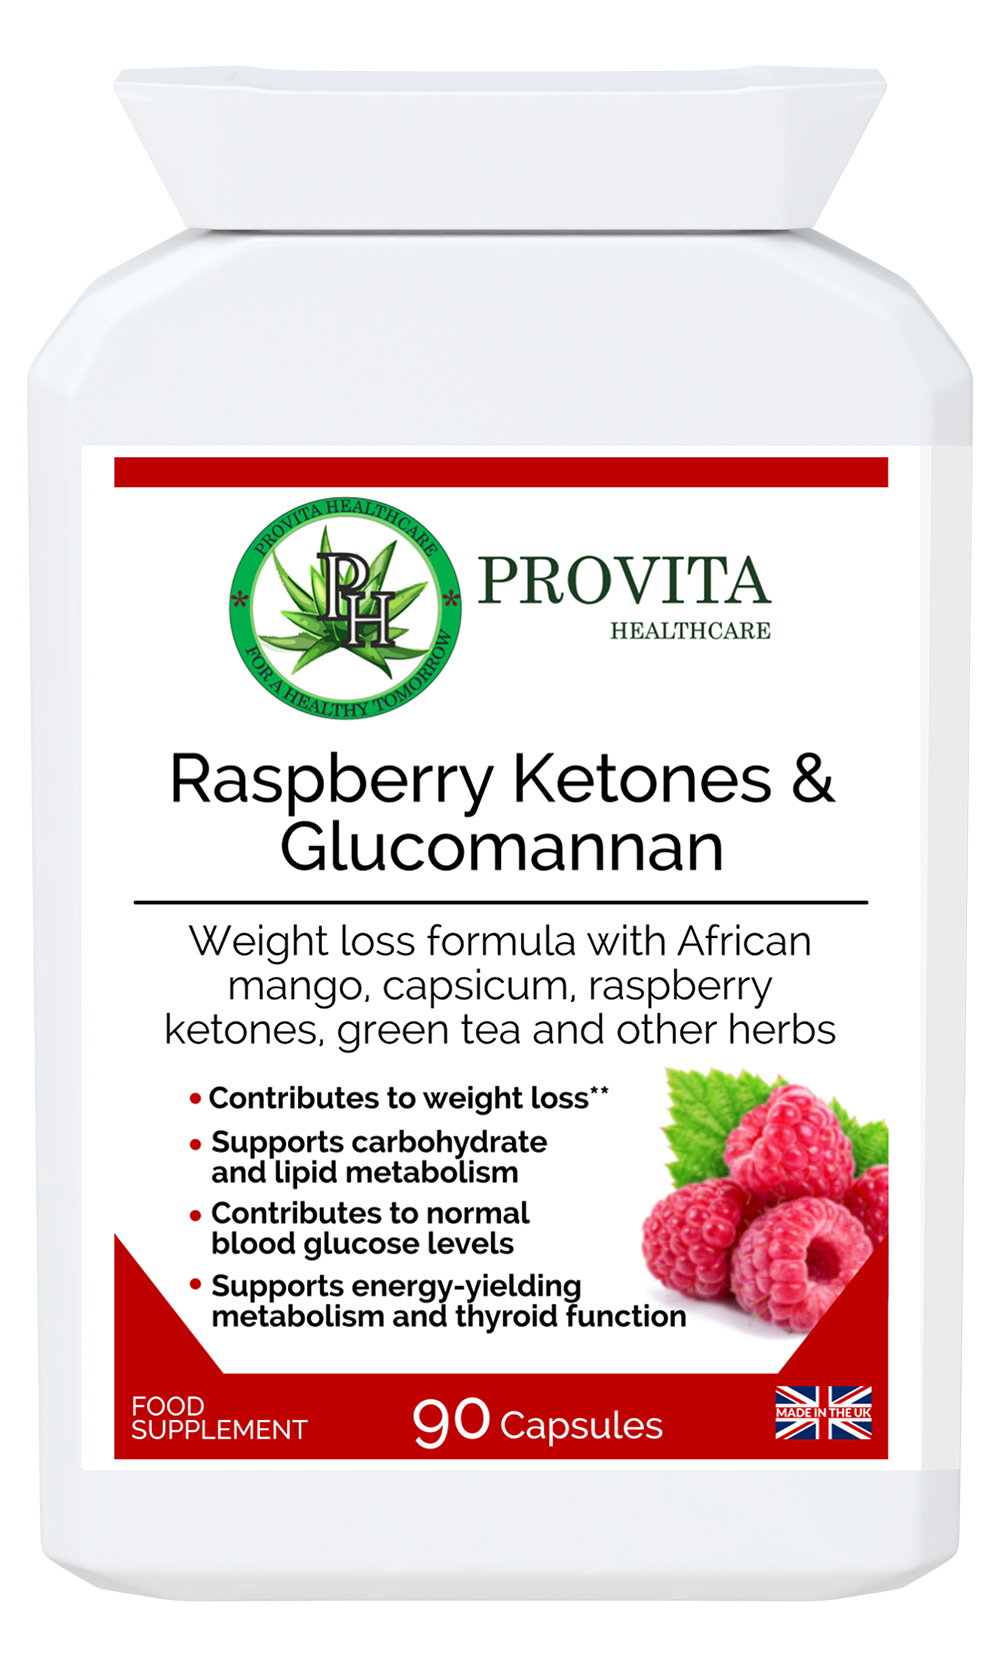 Raspberry ketones & Glucomannan Weight Loss Aid